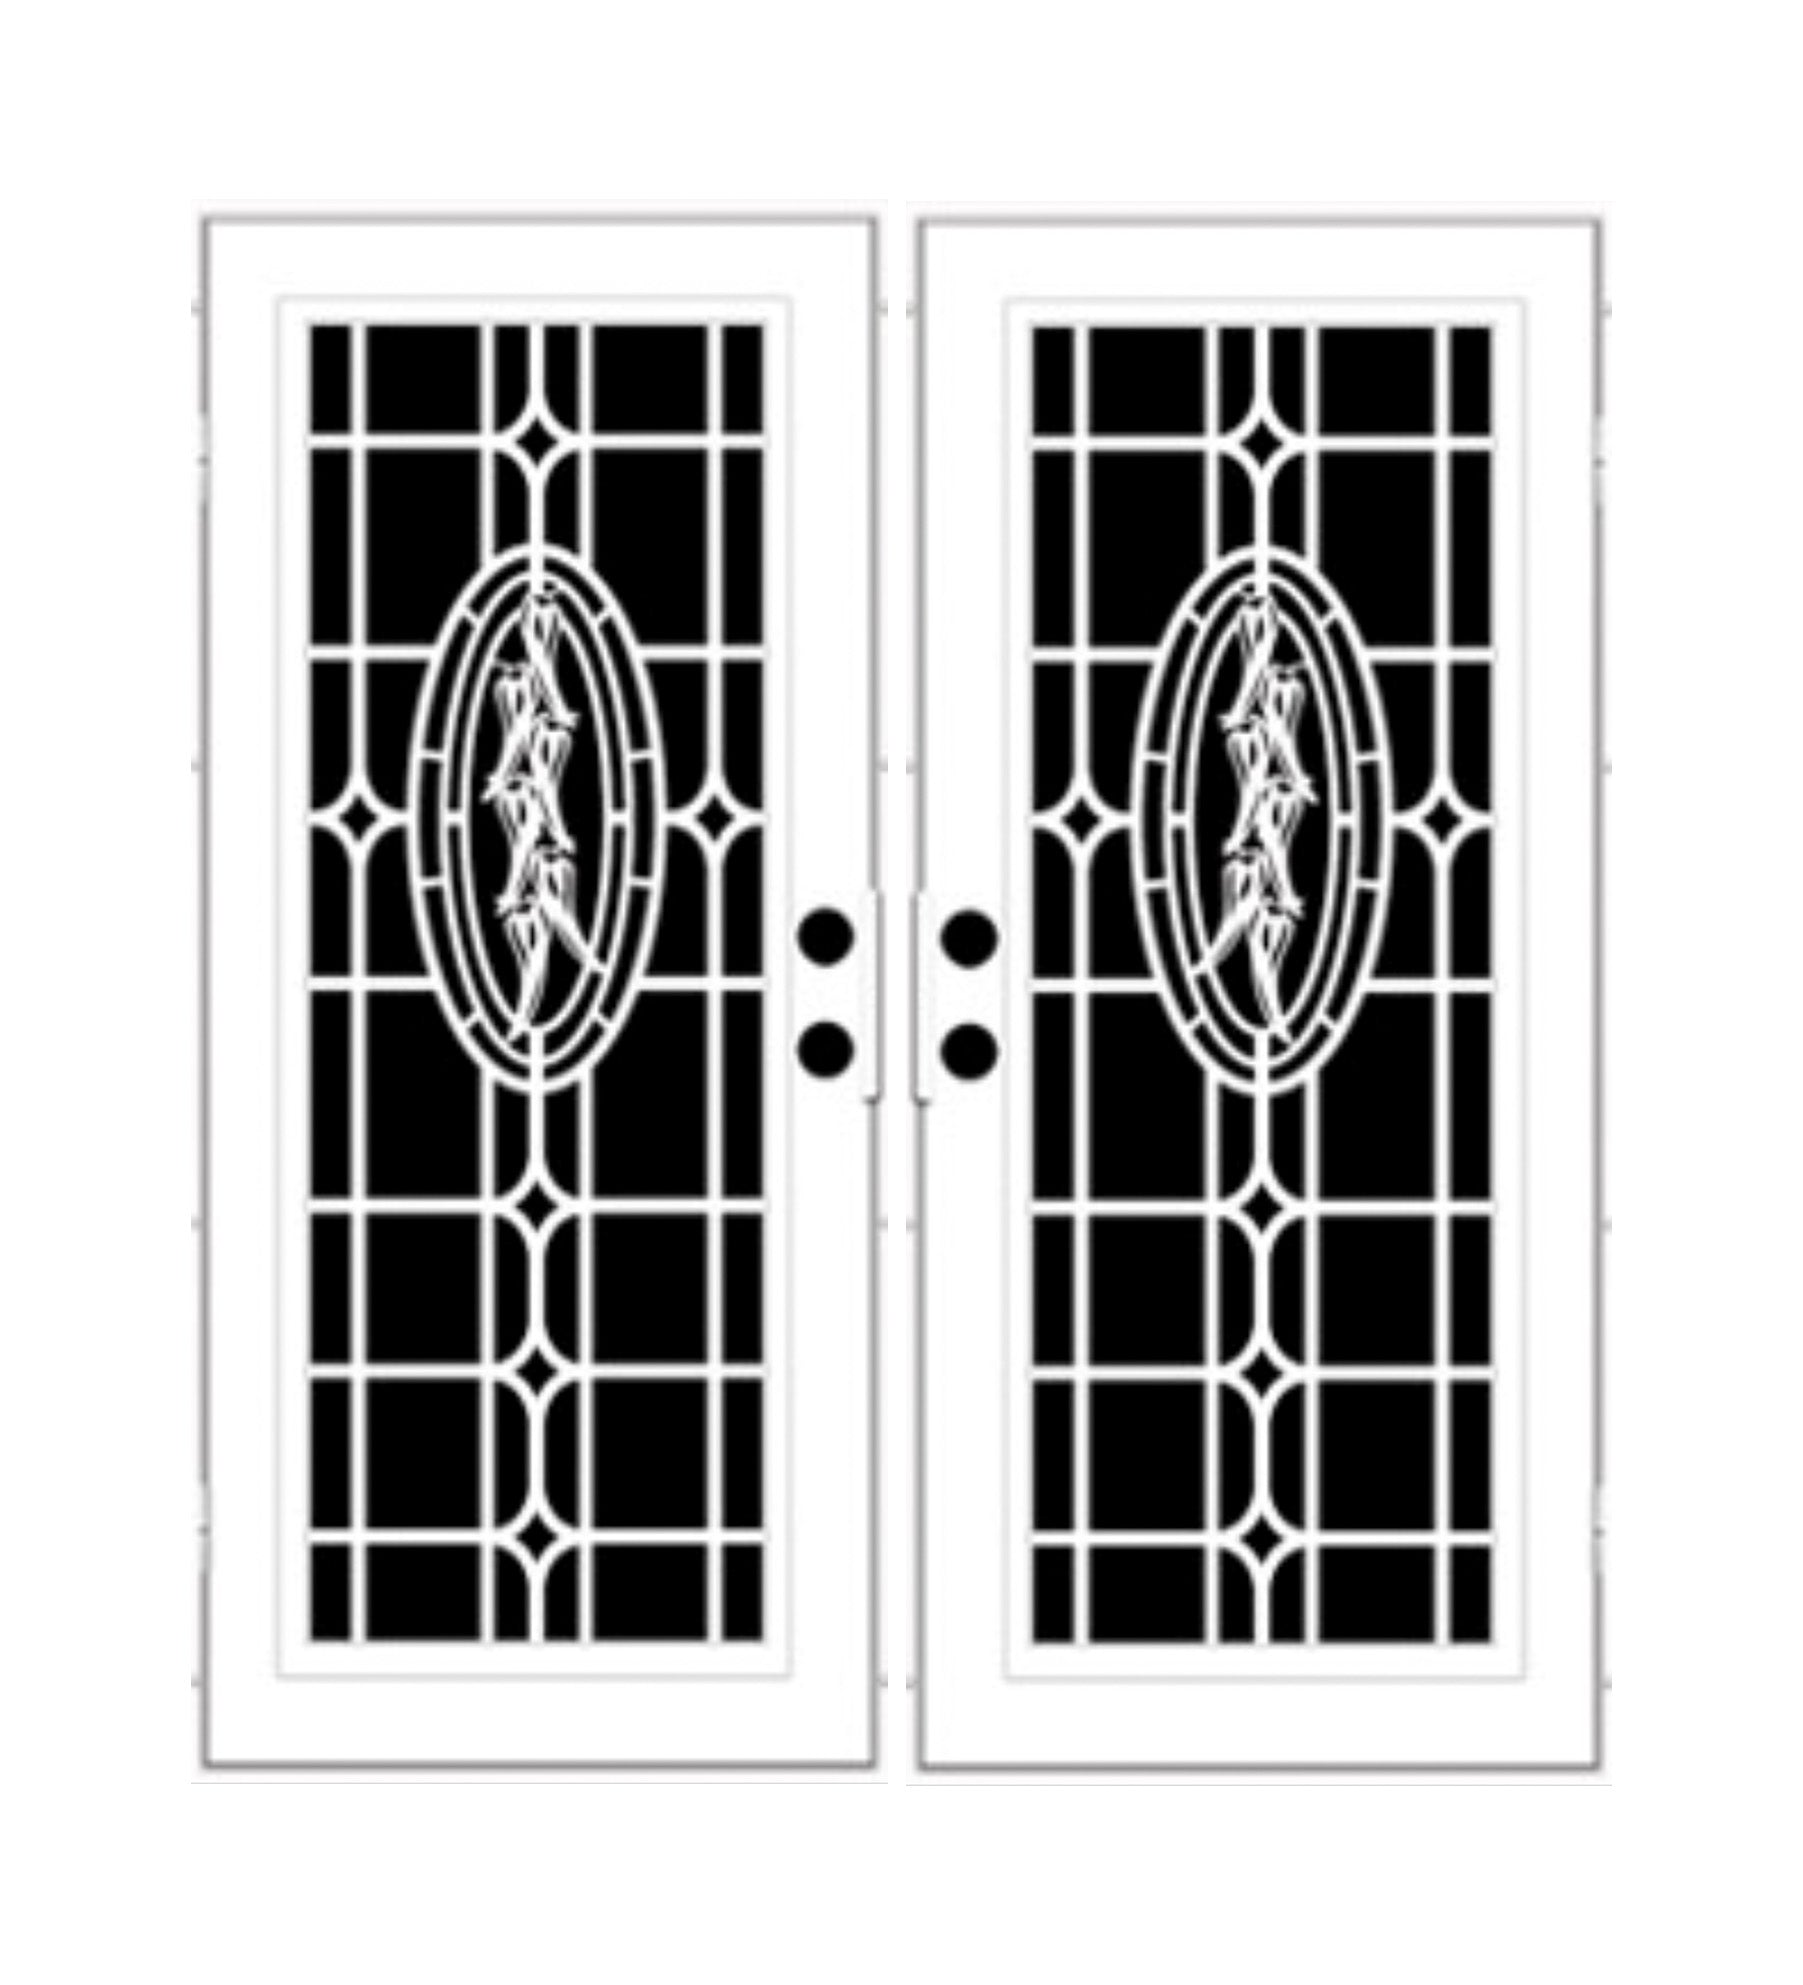 INSTALLED Titan Premium Aluminum Security Screen Double Door Chili Ristra    STARTING $2,341